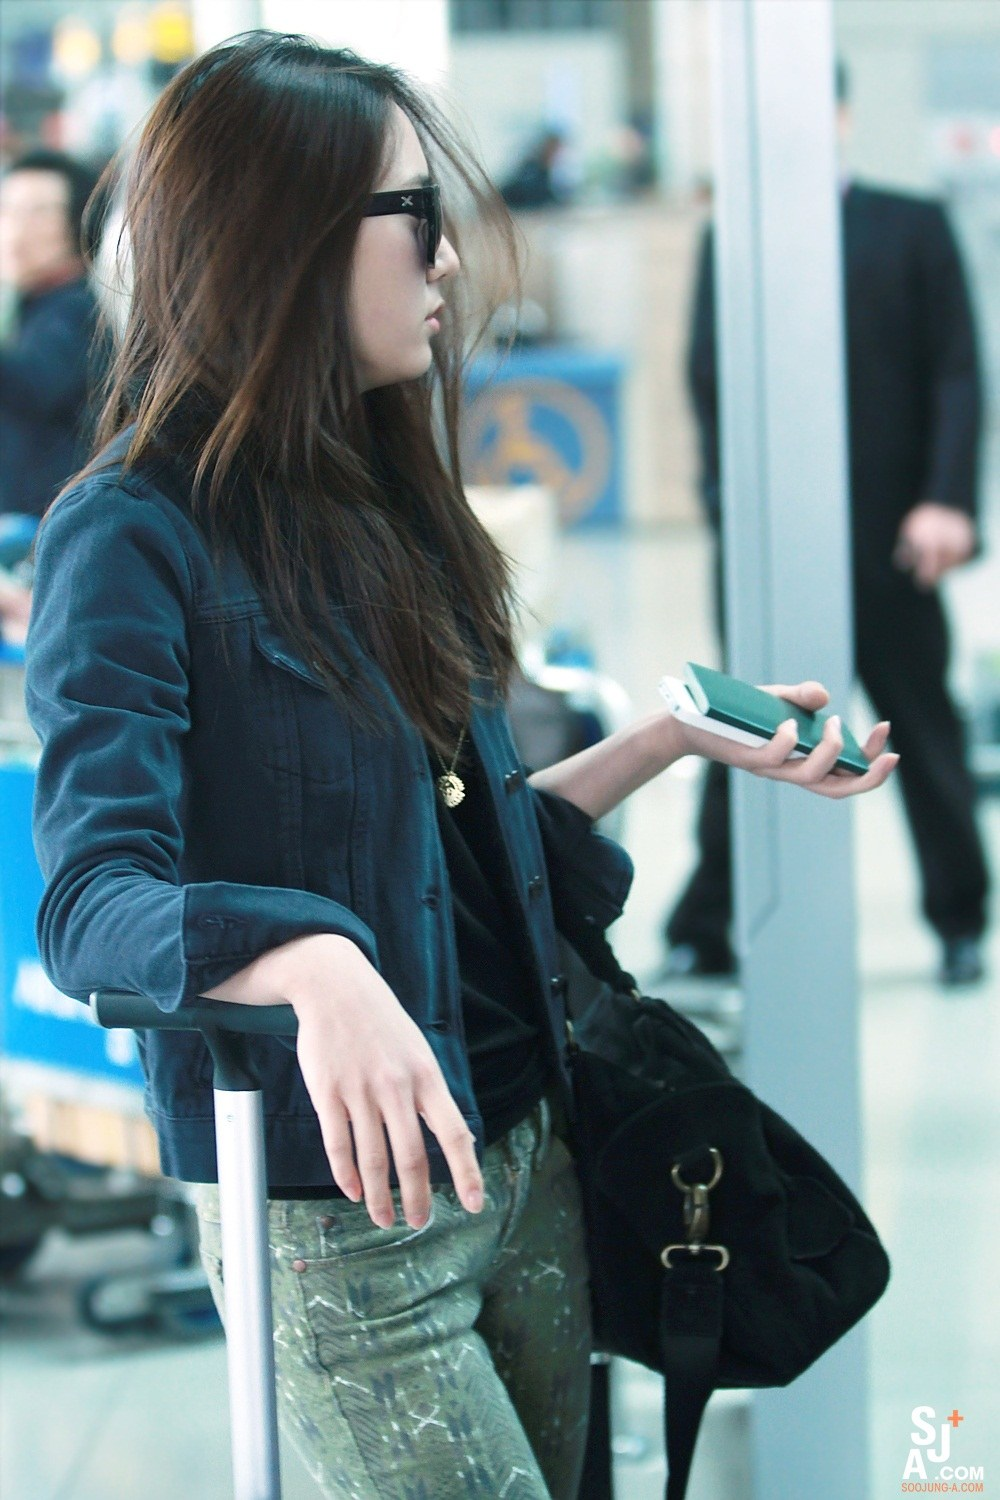 1000 Images About Krystal On Pinterest F X Pants And Airport Fashion